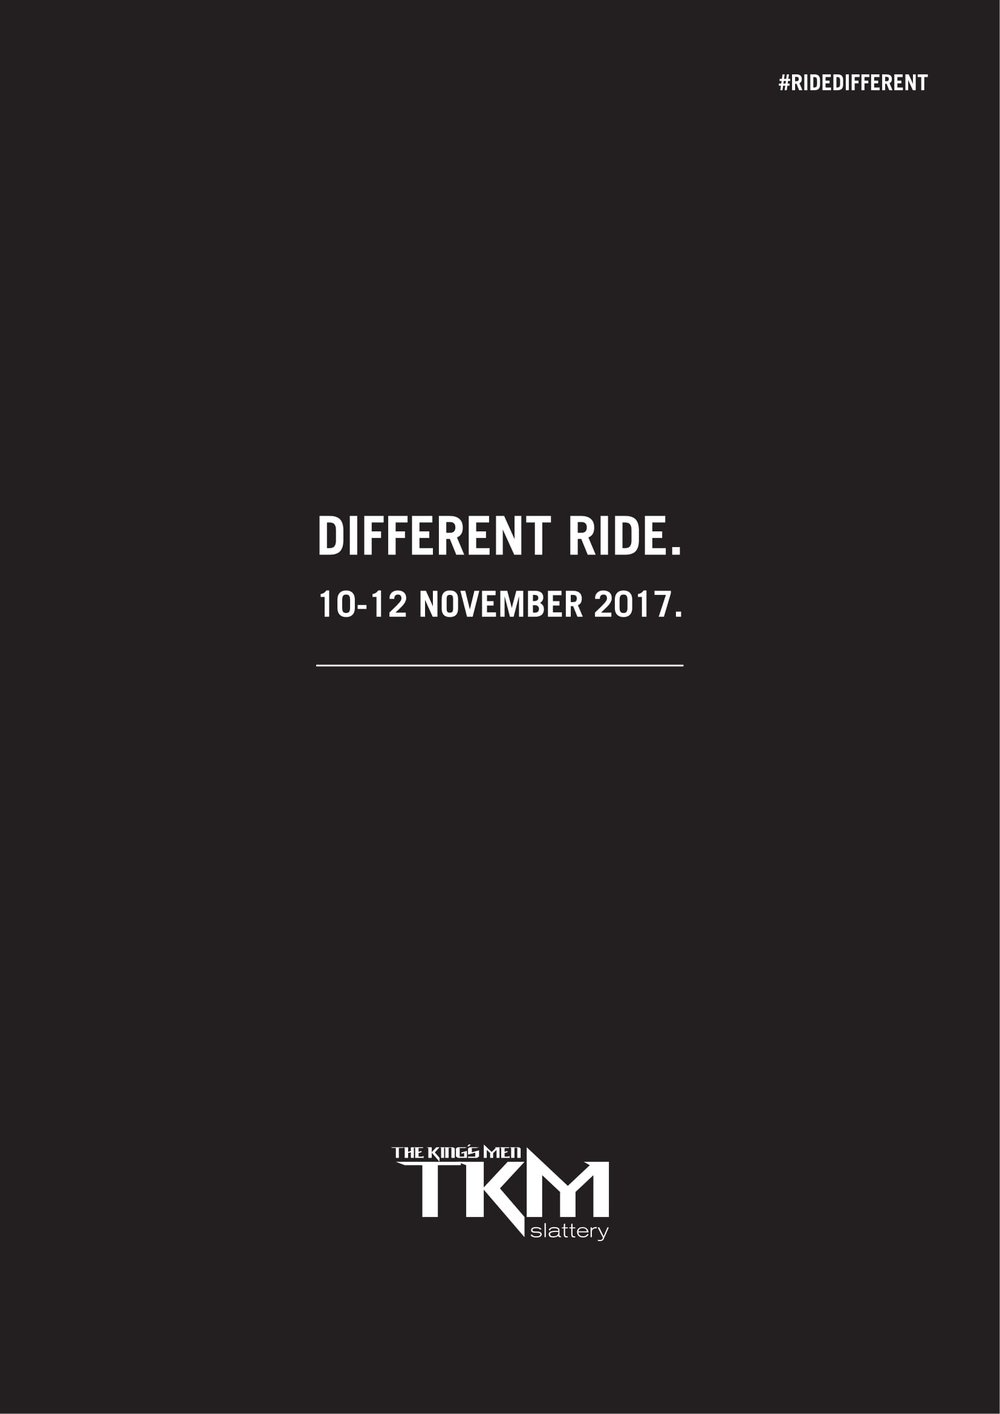 TKM_RIDE+_REGISTRATION_2017 - Page 1-1.jpg